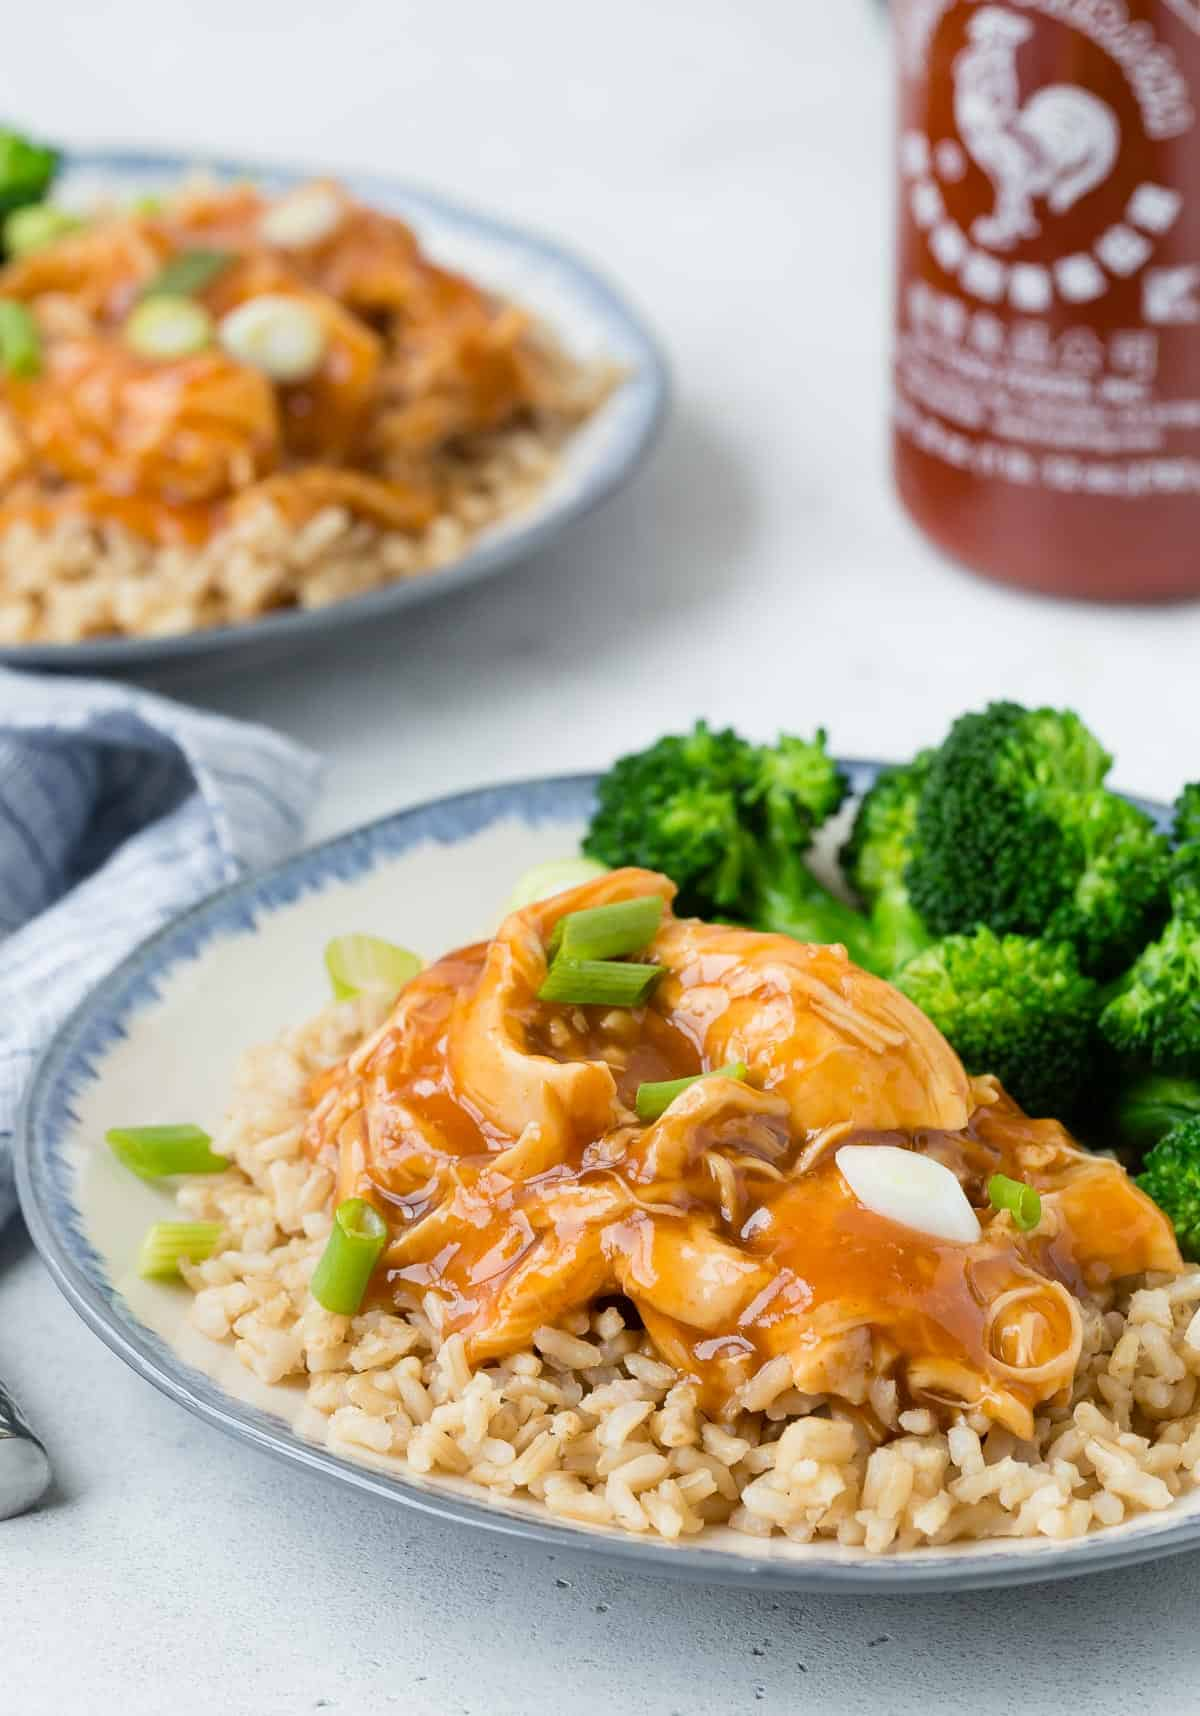 Chicken, rice, and broccoli on a plate with sriracha in the background.